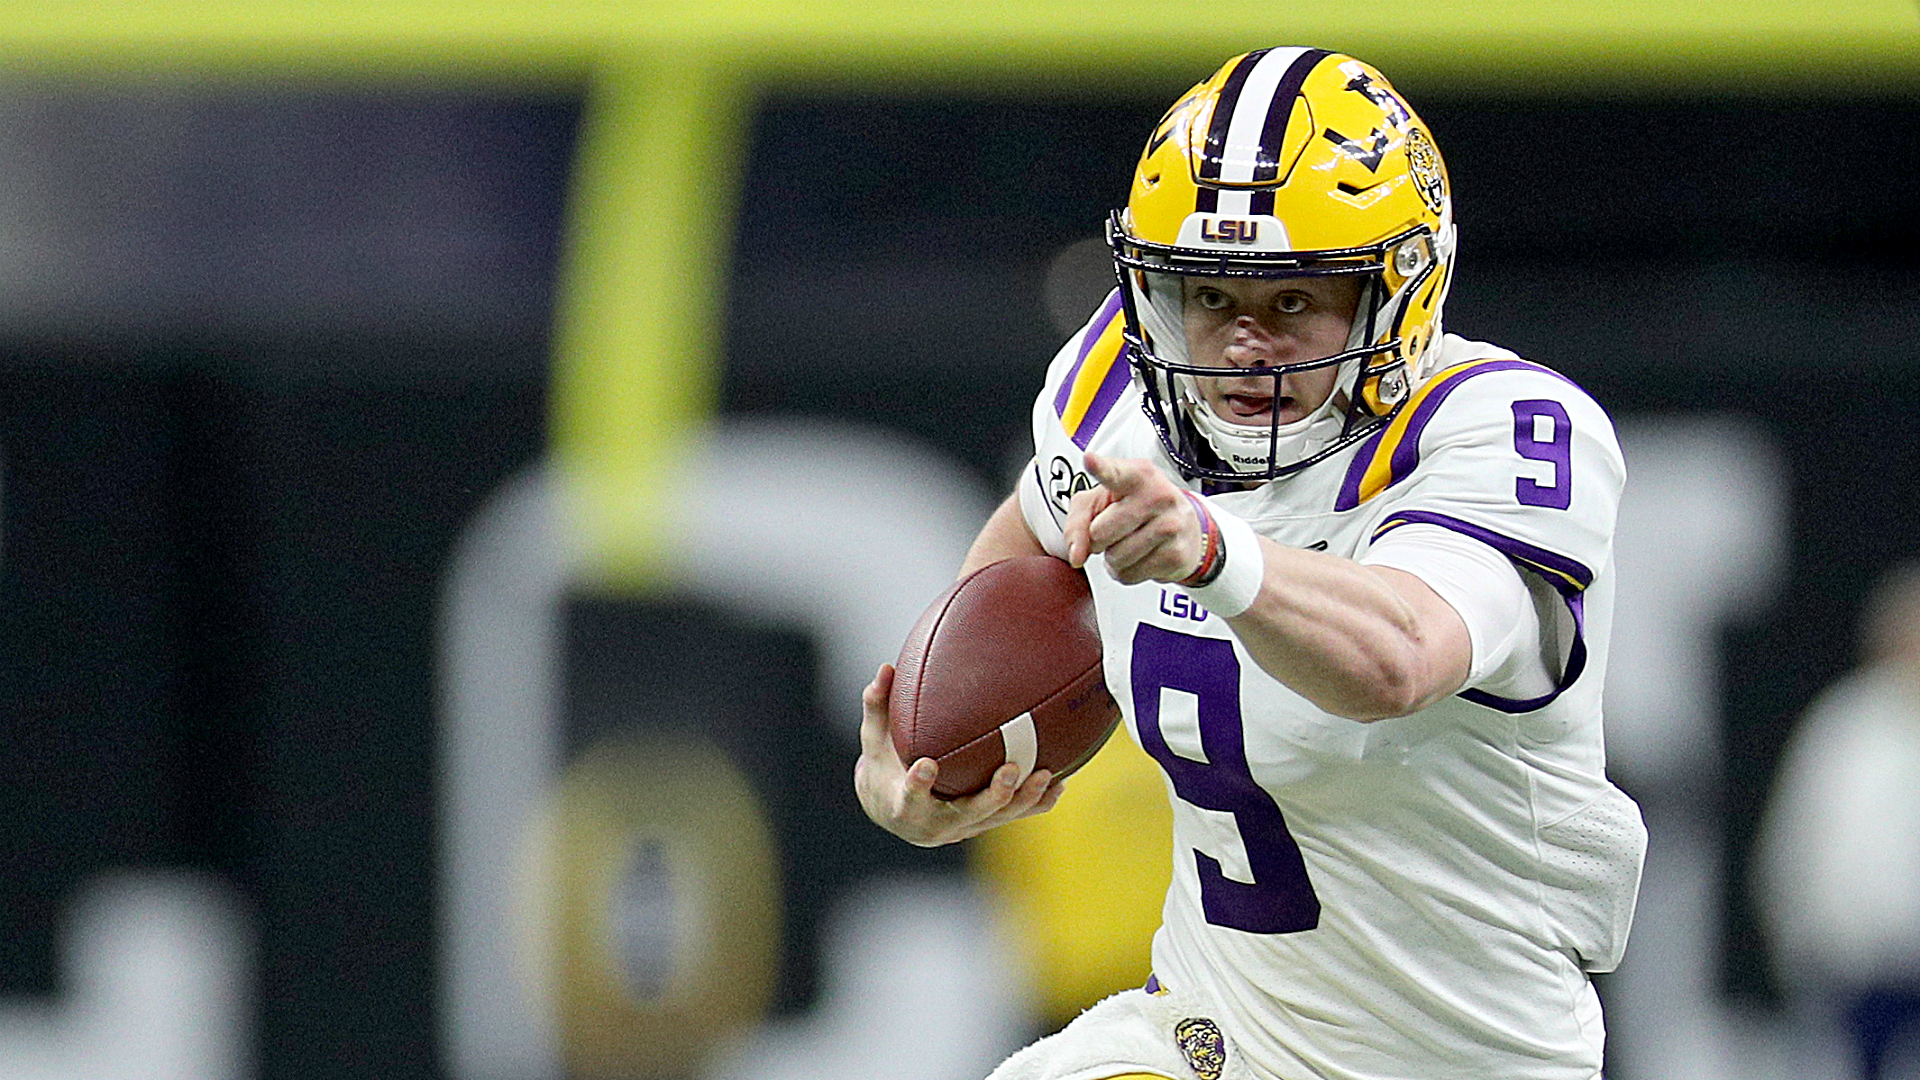 Joe Burrow once tried to fight an LSU teammate at practice, leading to an all-out brawl